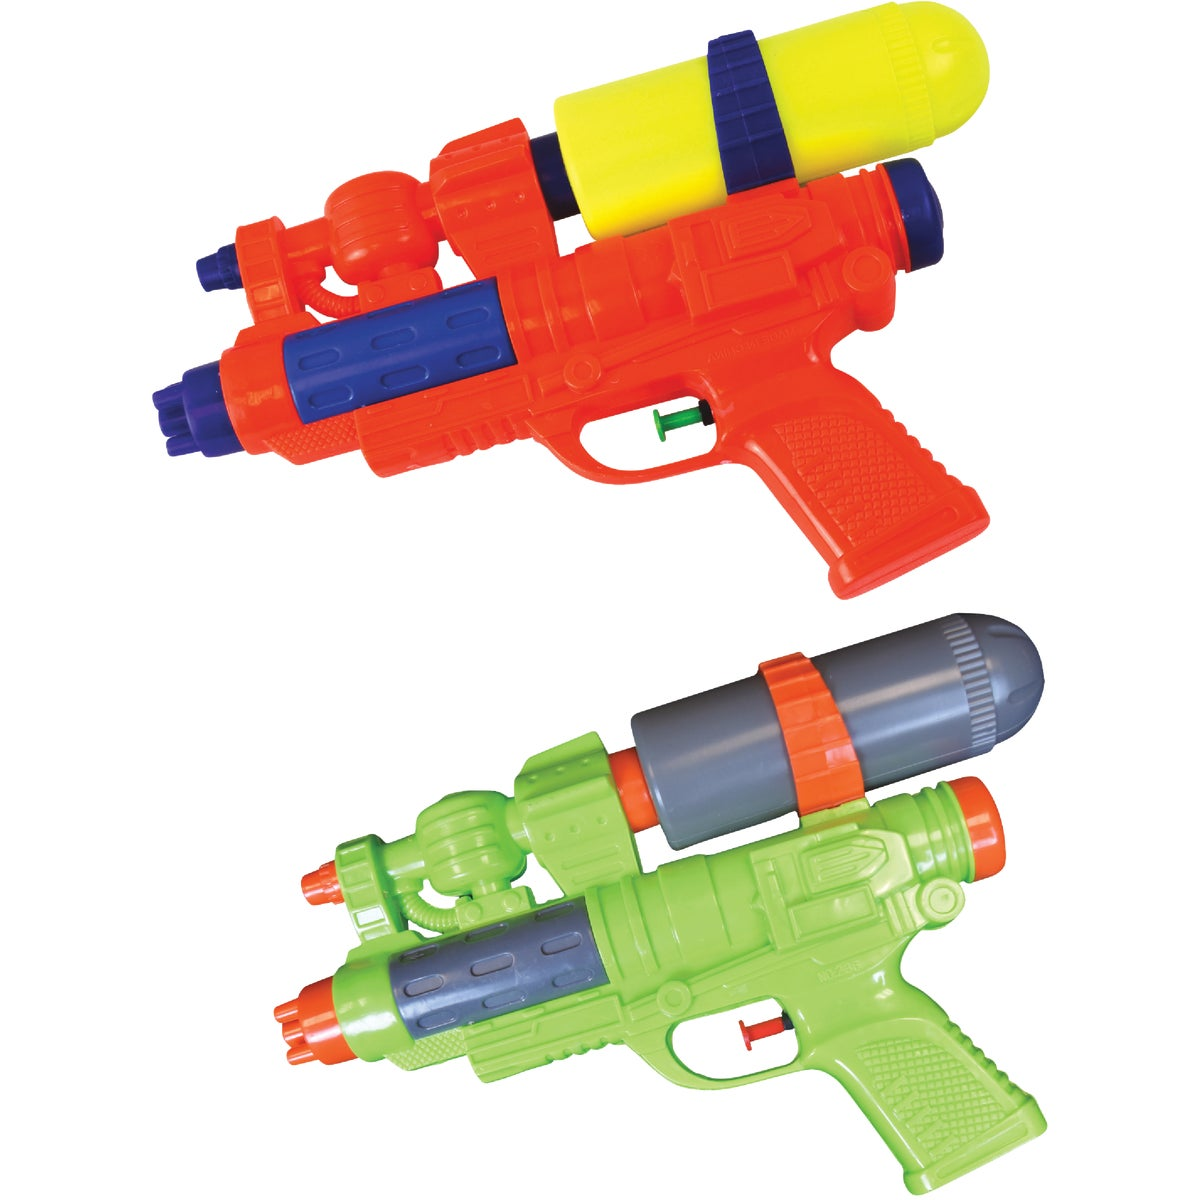 CSG X2 SM WATER GUN - 81001 by Water Sports Llc